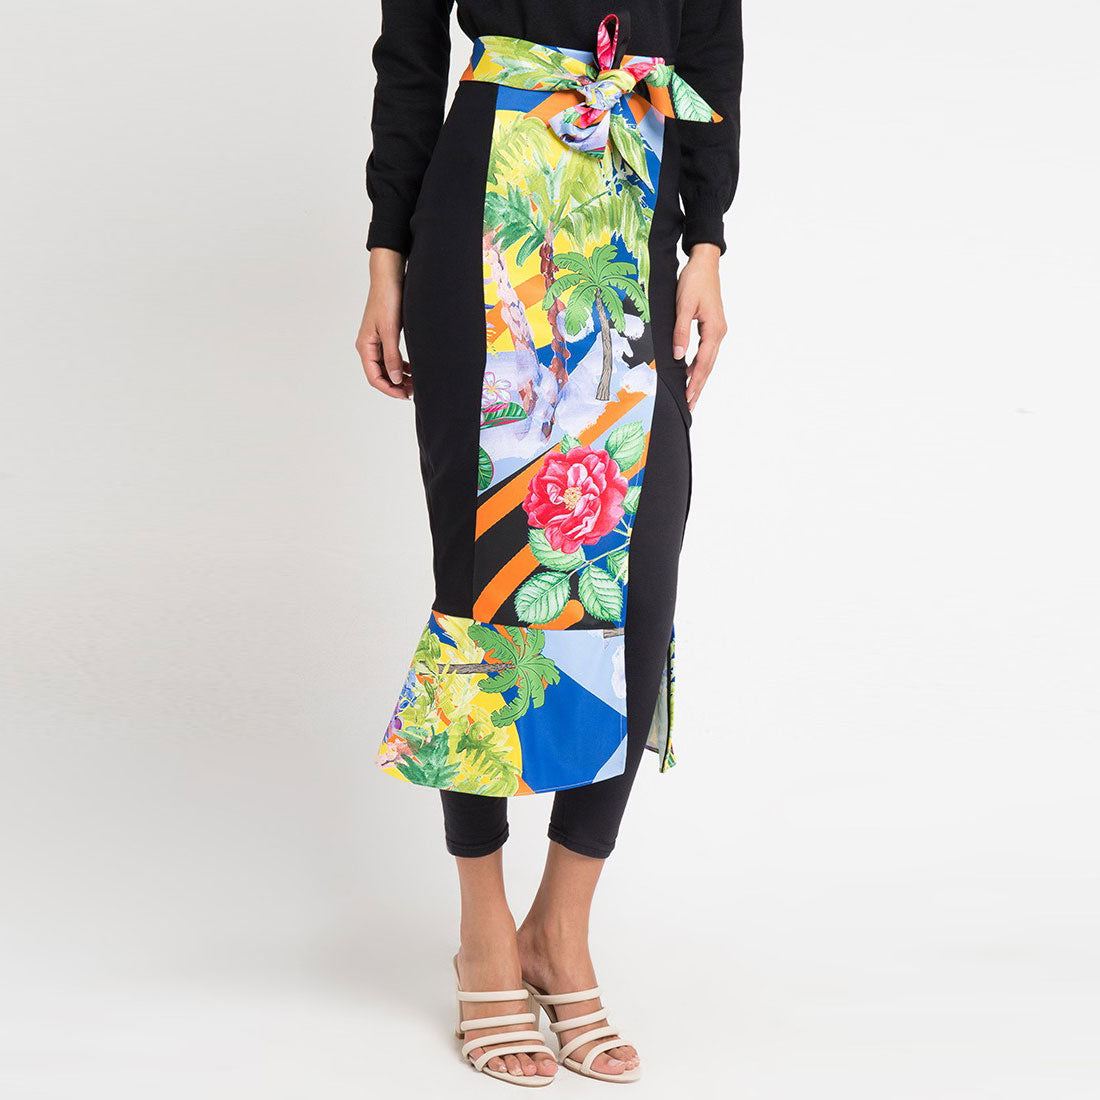 Mi Miami Blue Carrie Skirt-2Madison Avenue Indonesia